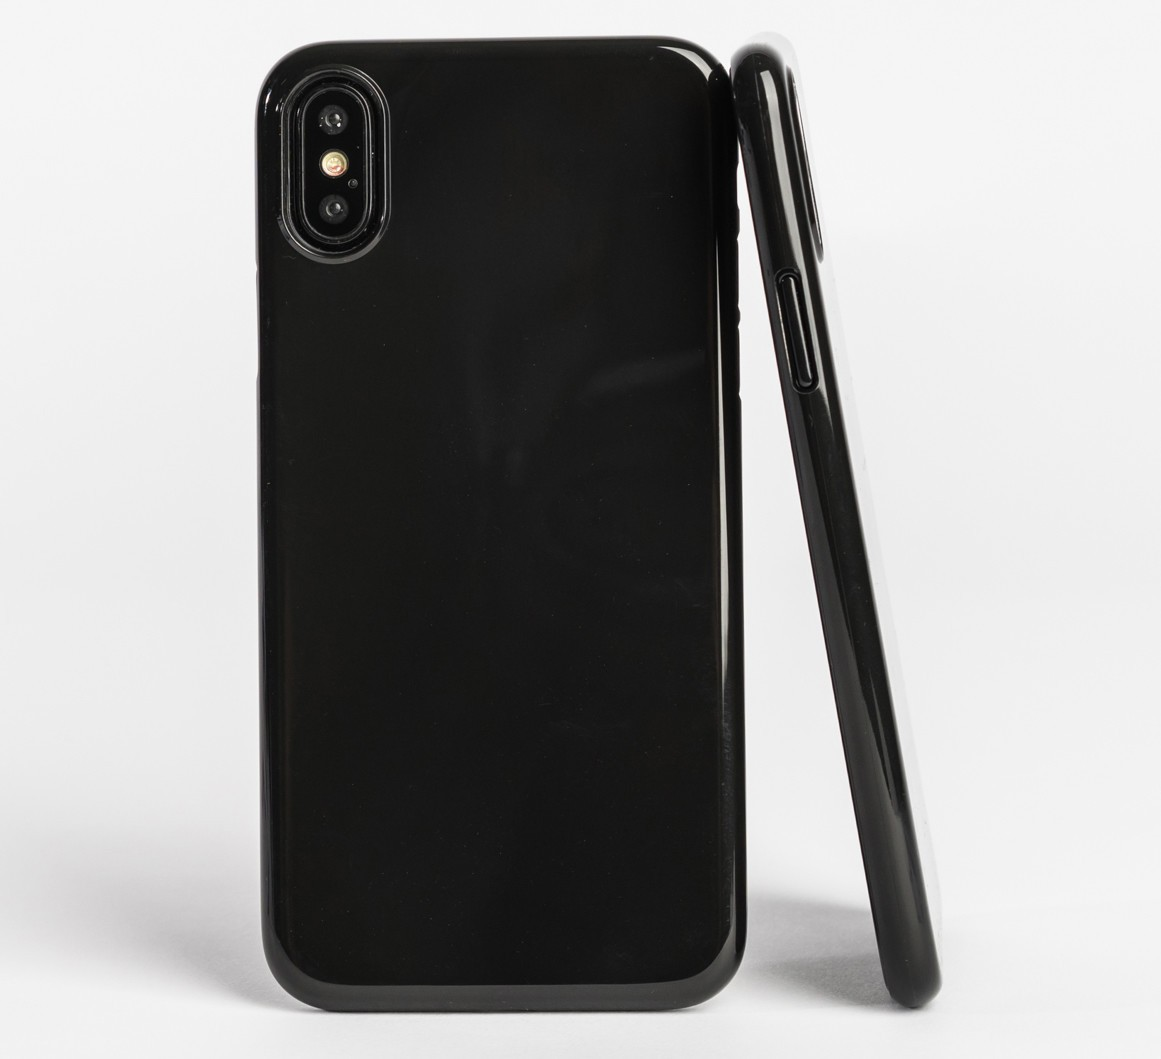 ddf86ead36 Baseus Silicon Case for Apple iPhone X Price in Pakistan